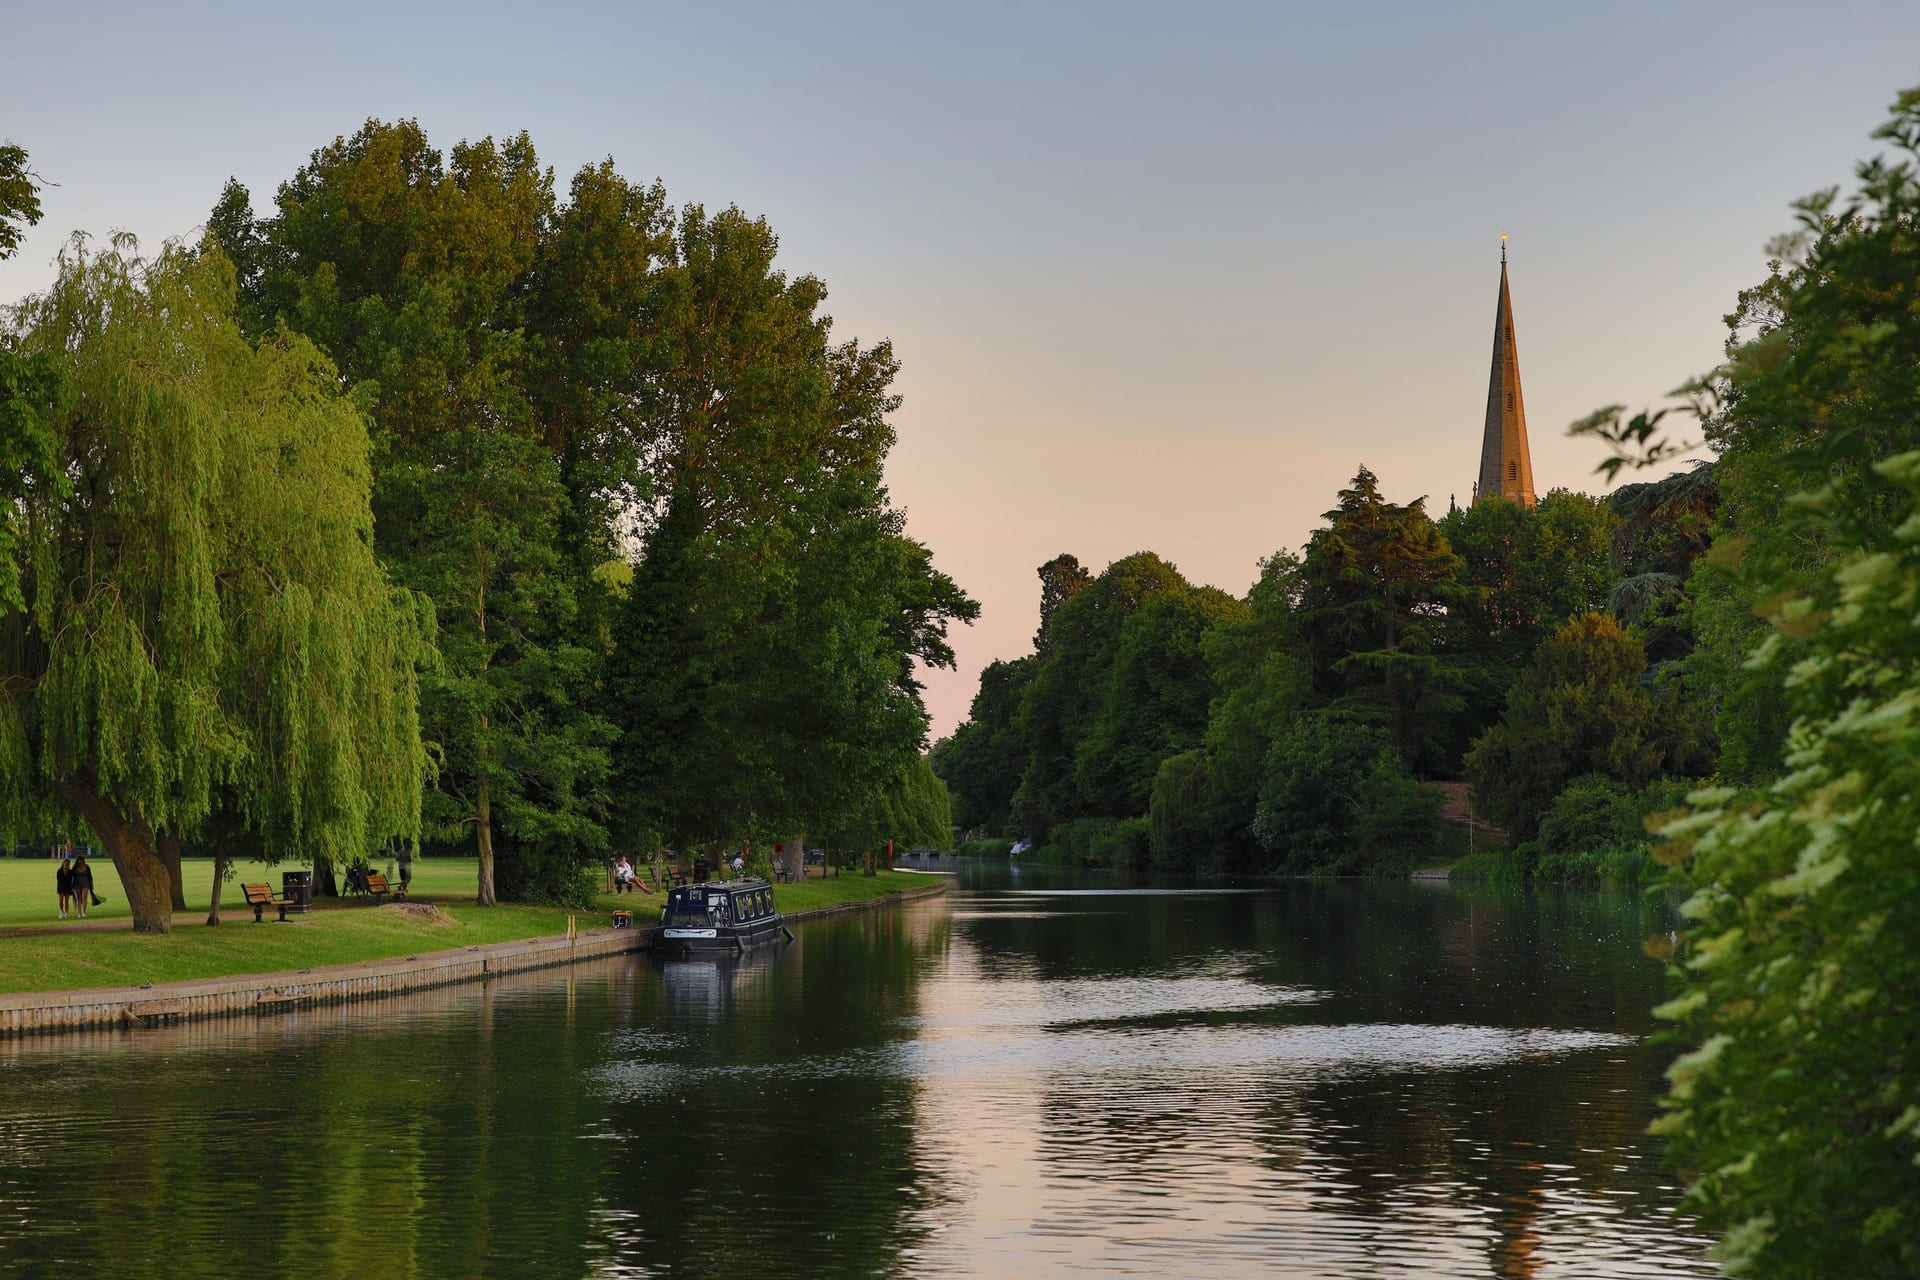 sunset-on-river-going-through-town-by-trees-and-church-stratford-upon-avon-england-day-trips-from-london-by-car